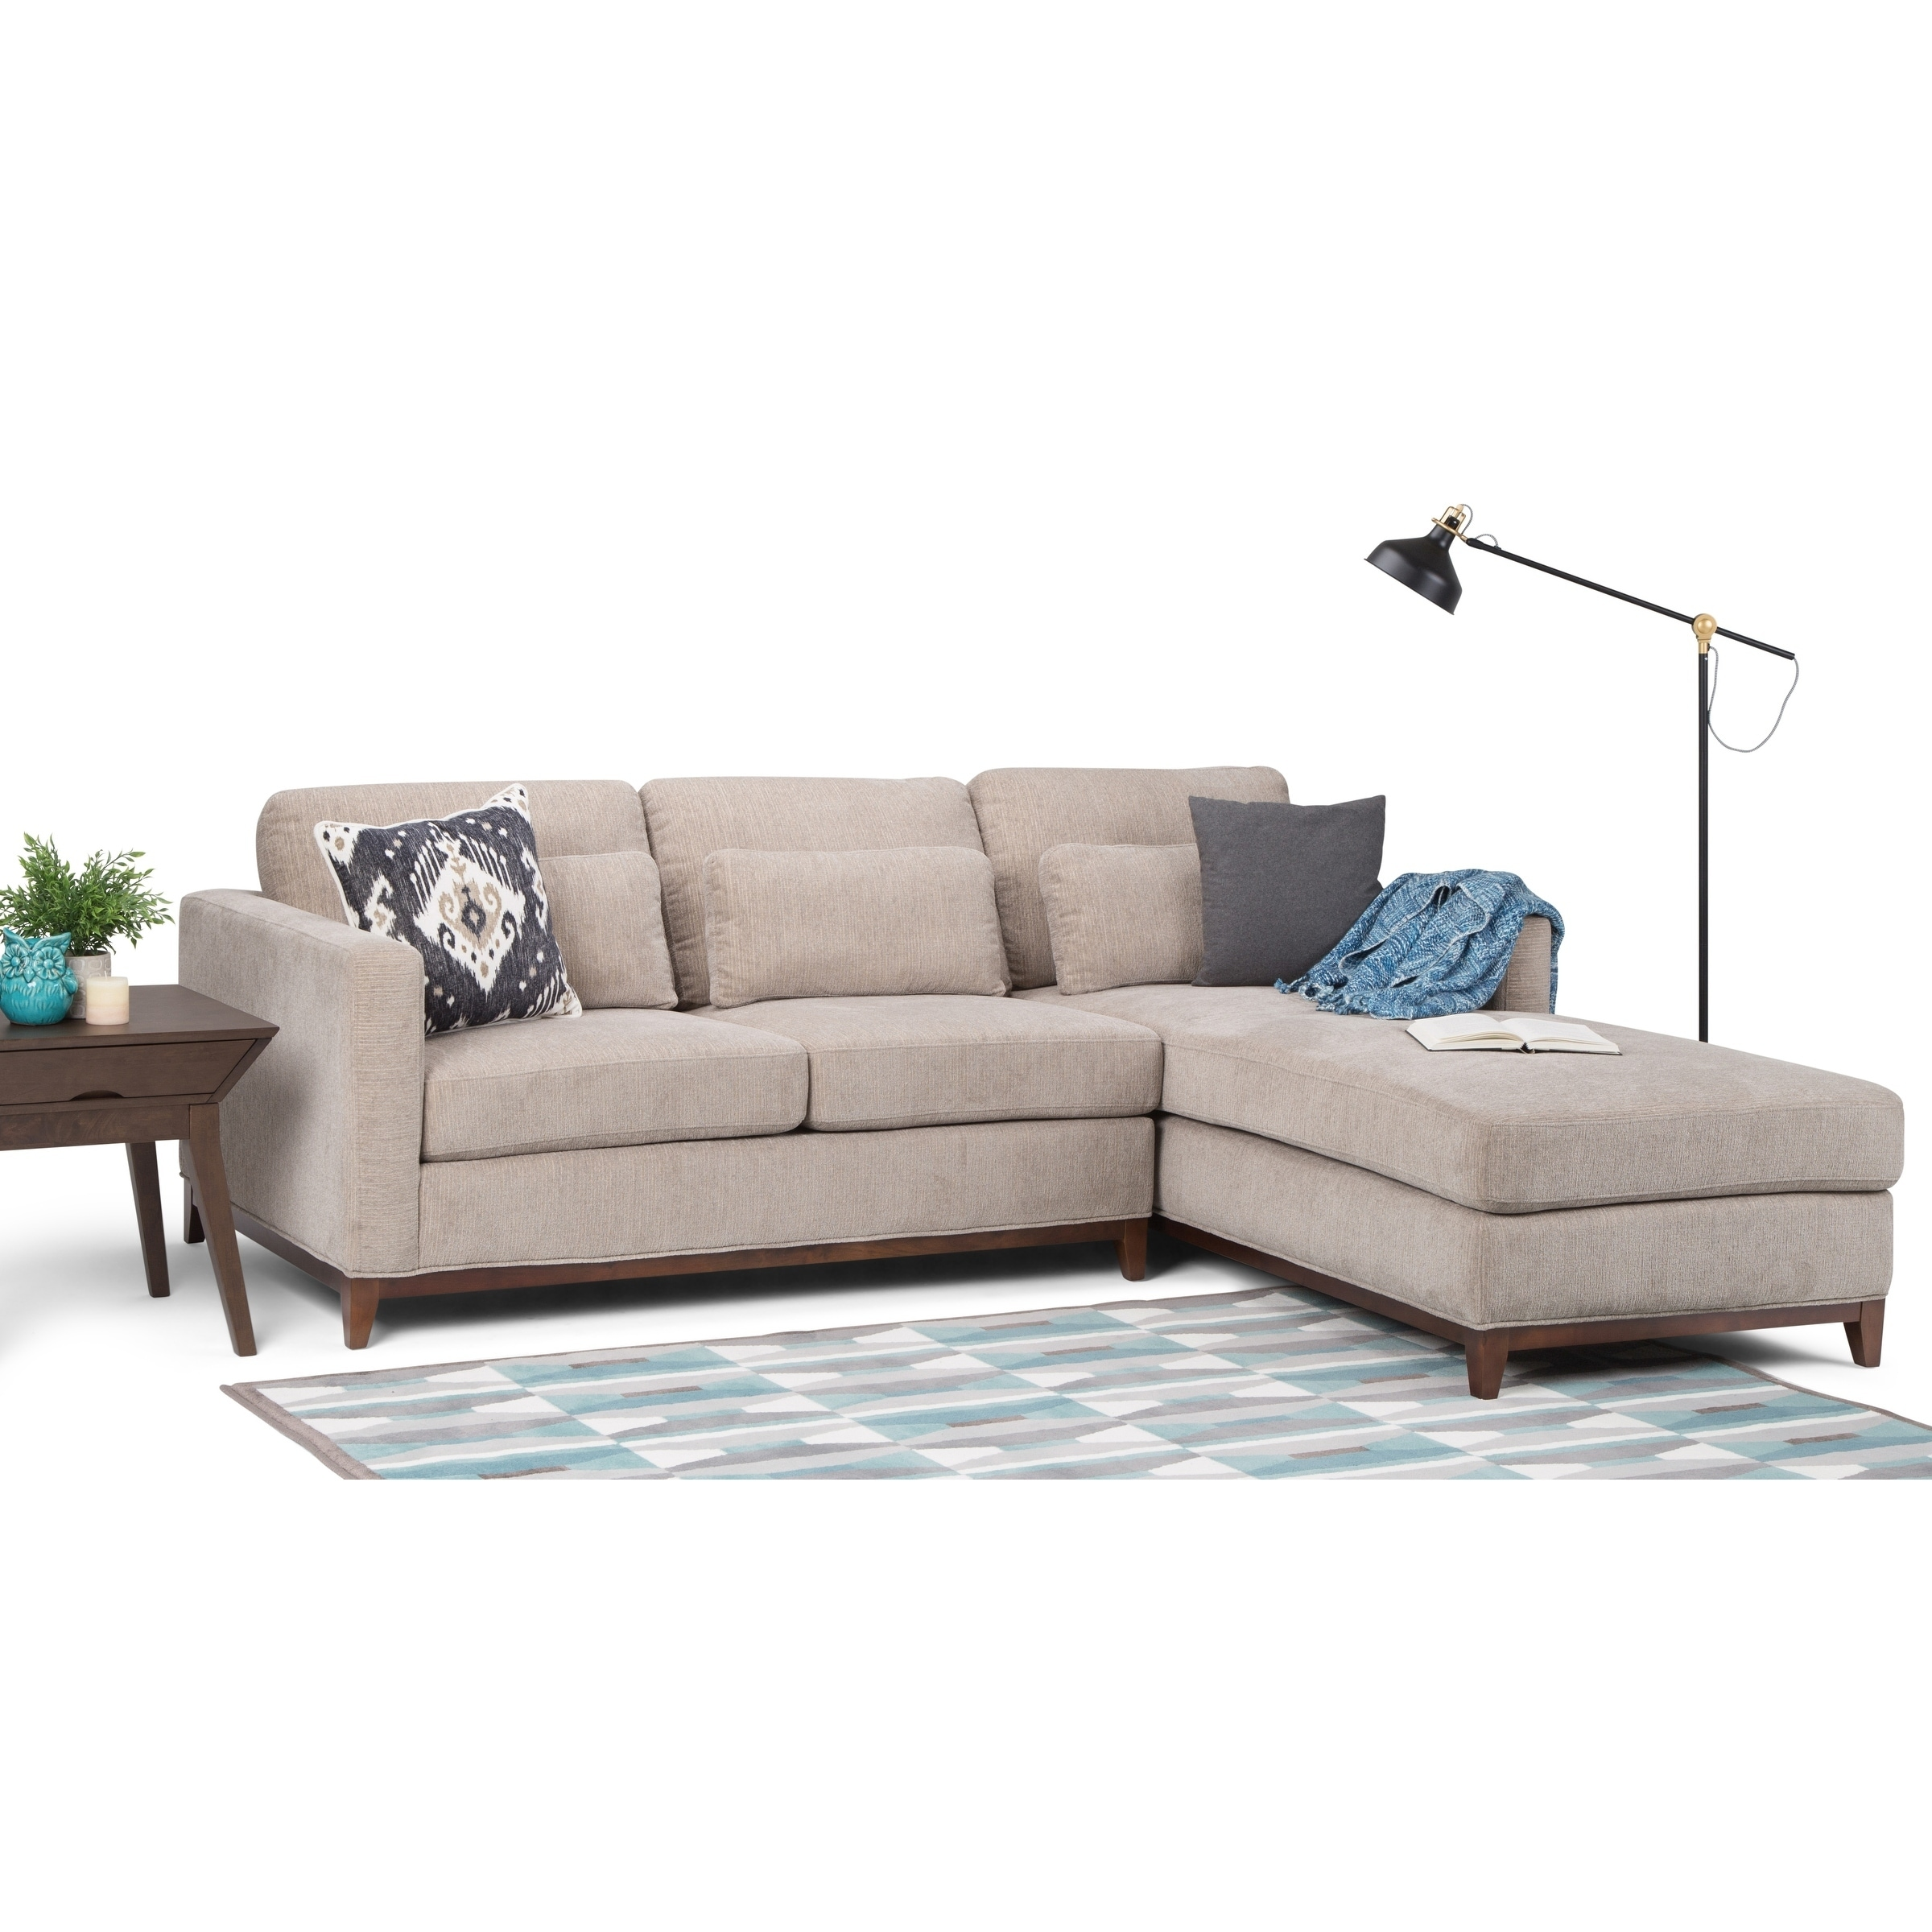 Wyndenhall Arden Contemporary 97 Inch Wide Sectional In Fog Grey Chenille Look Fabric